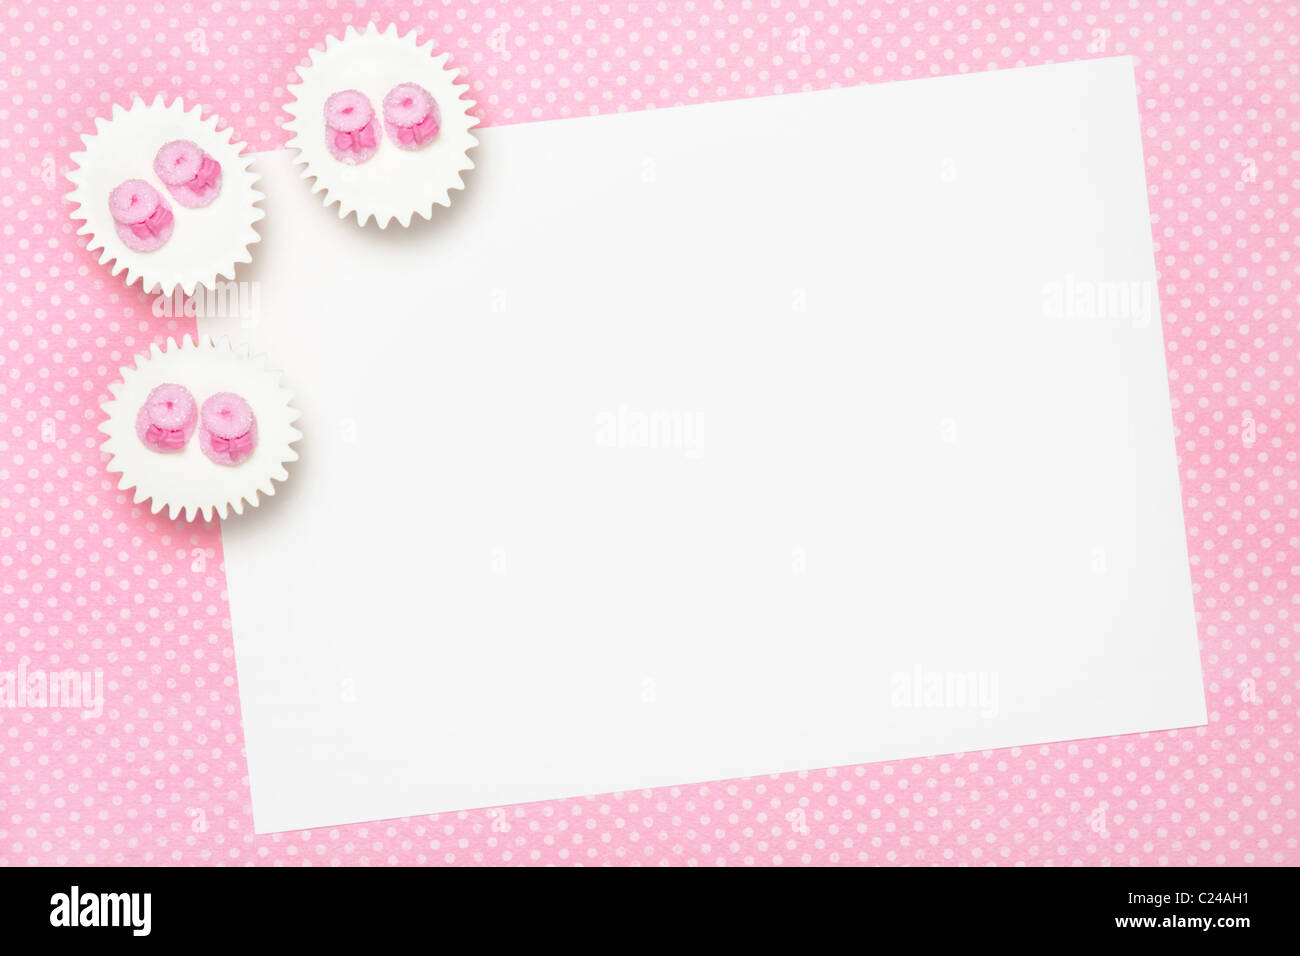 Blank baby shower invite - Stock Image